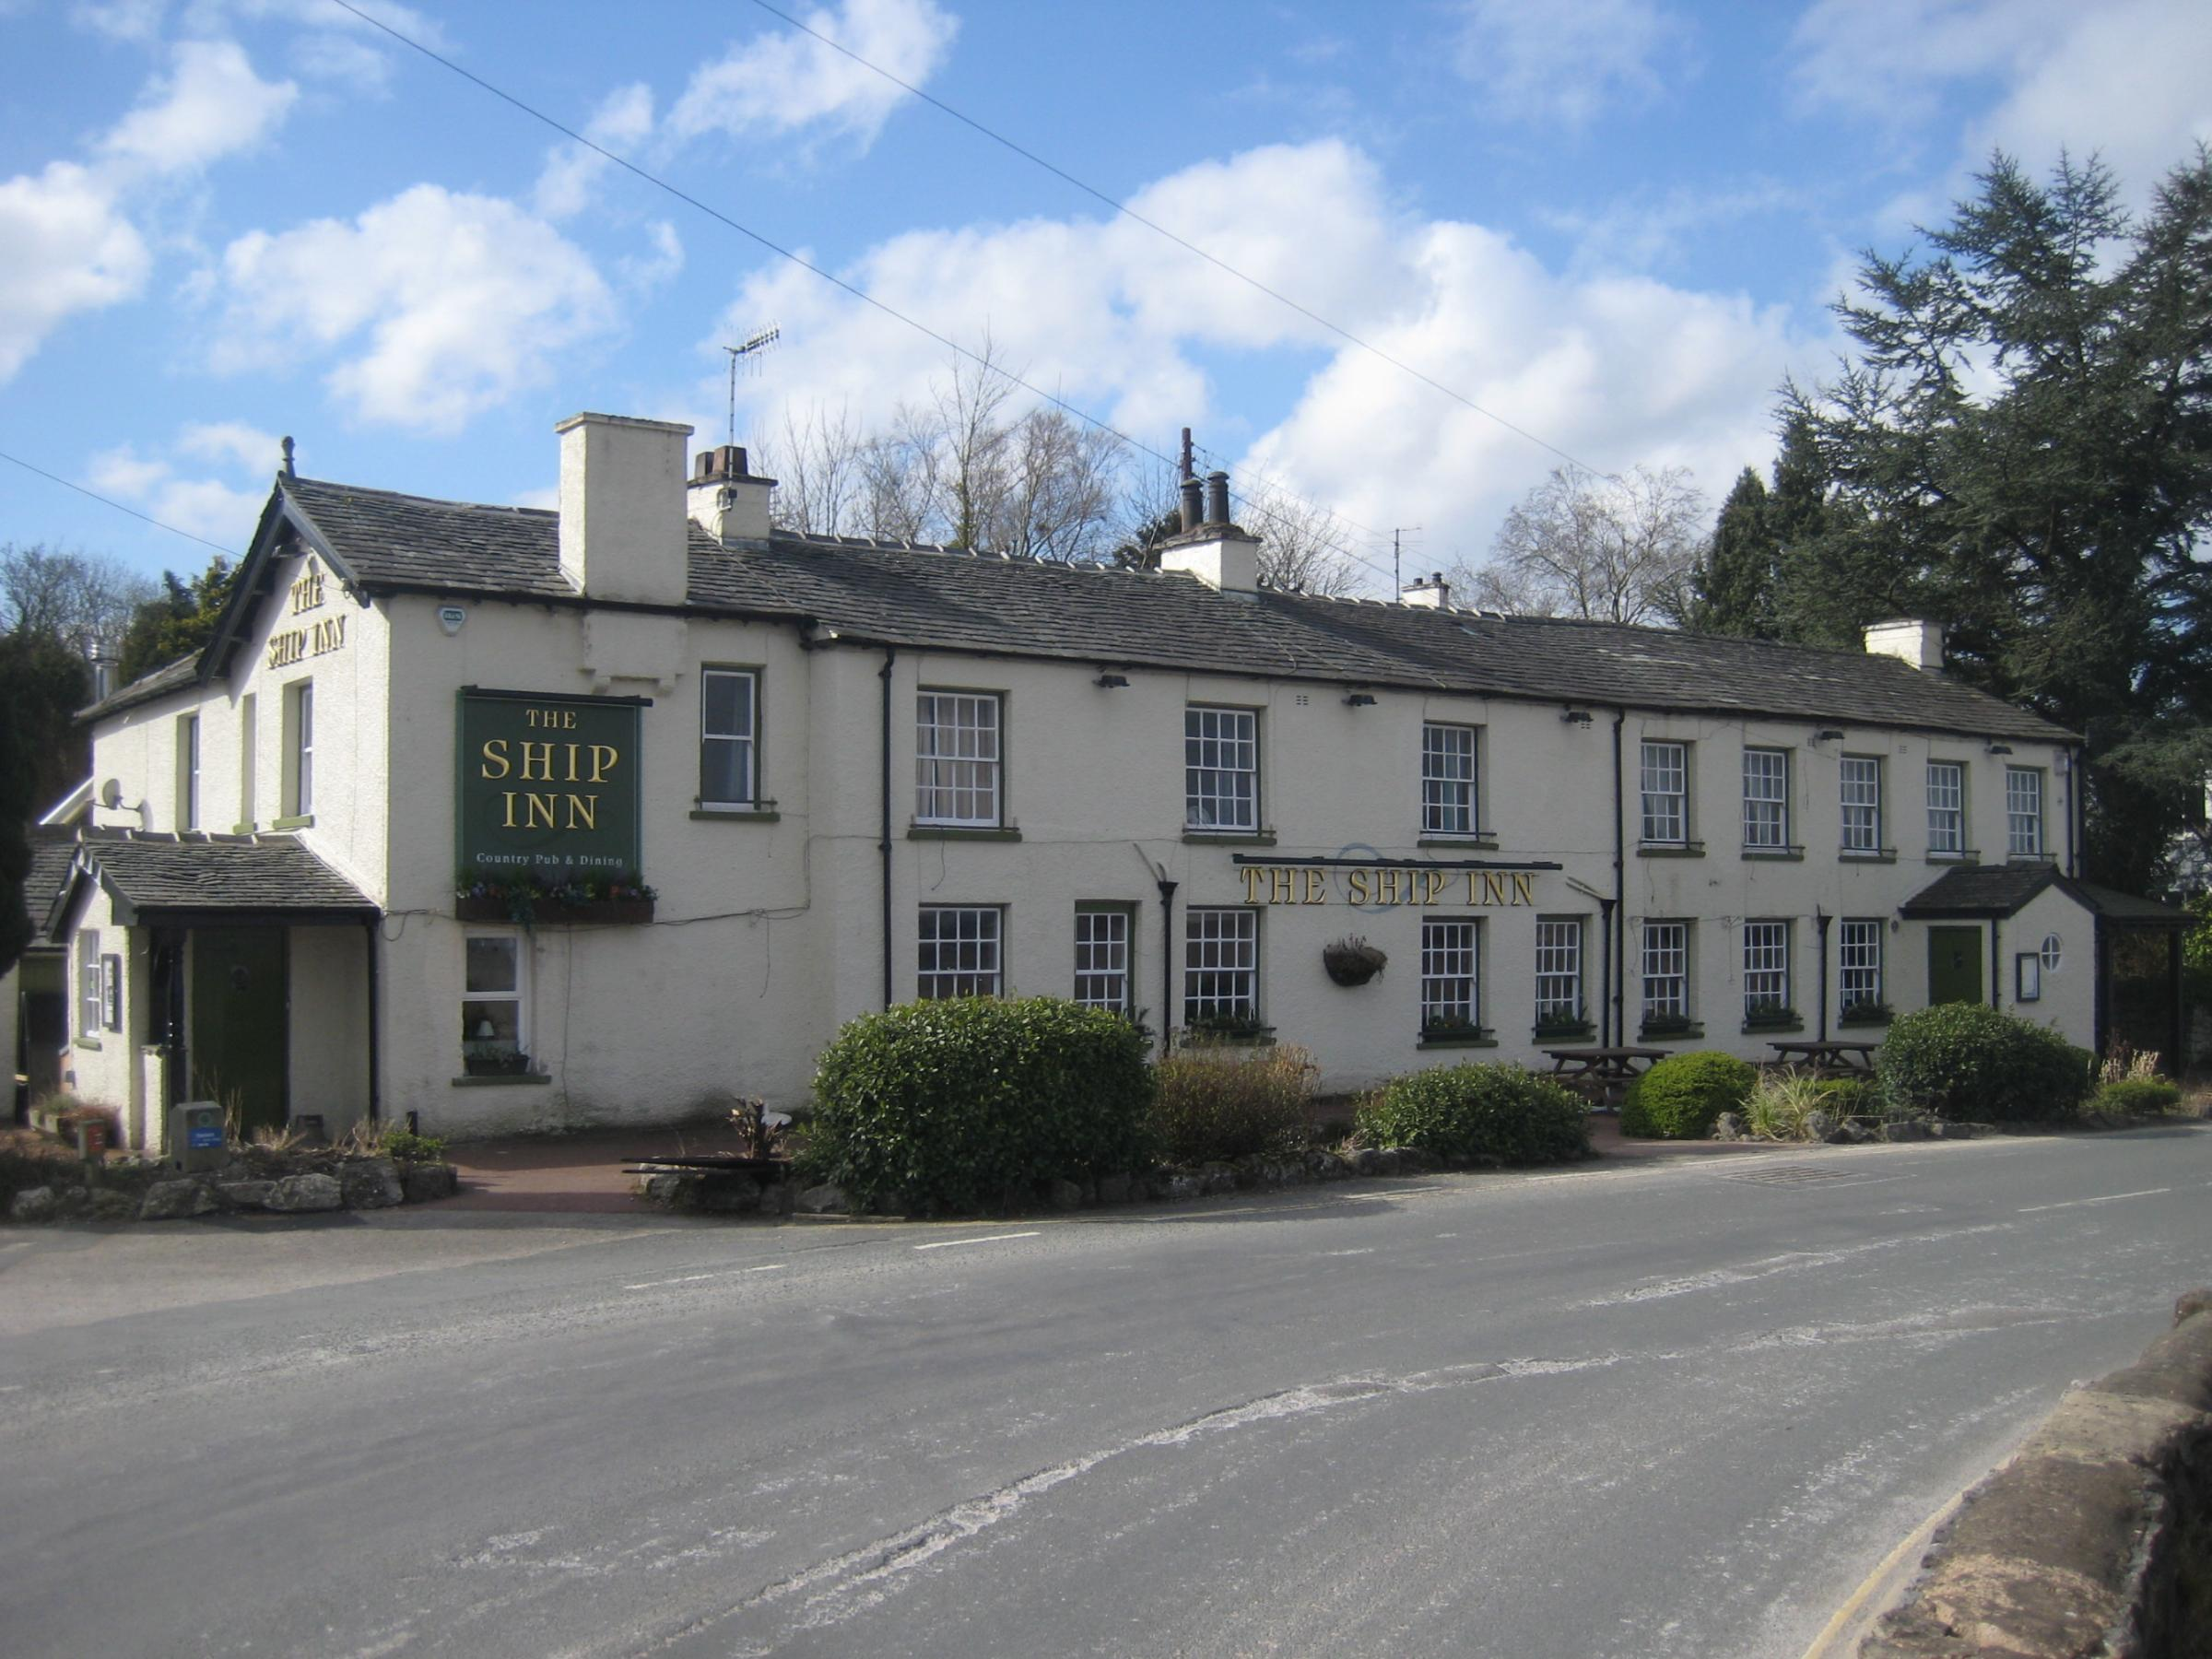 HISTORIC: The Ship Inn